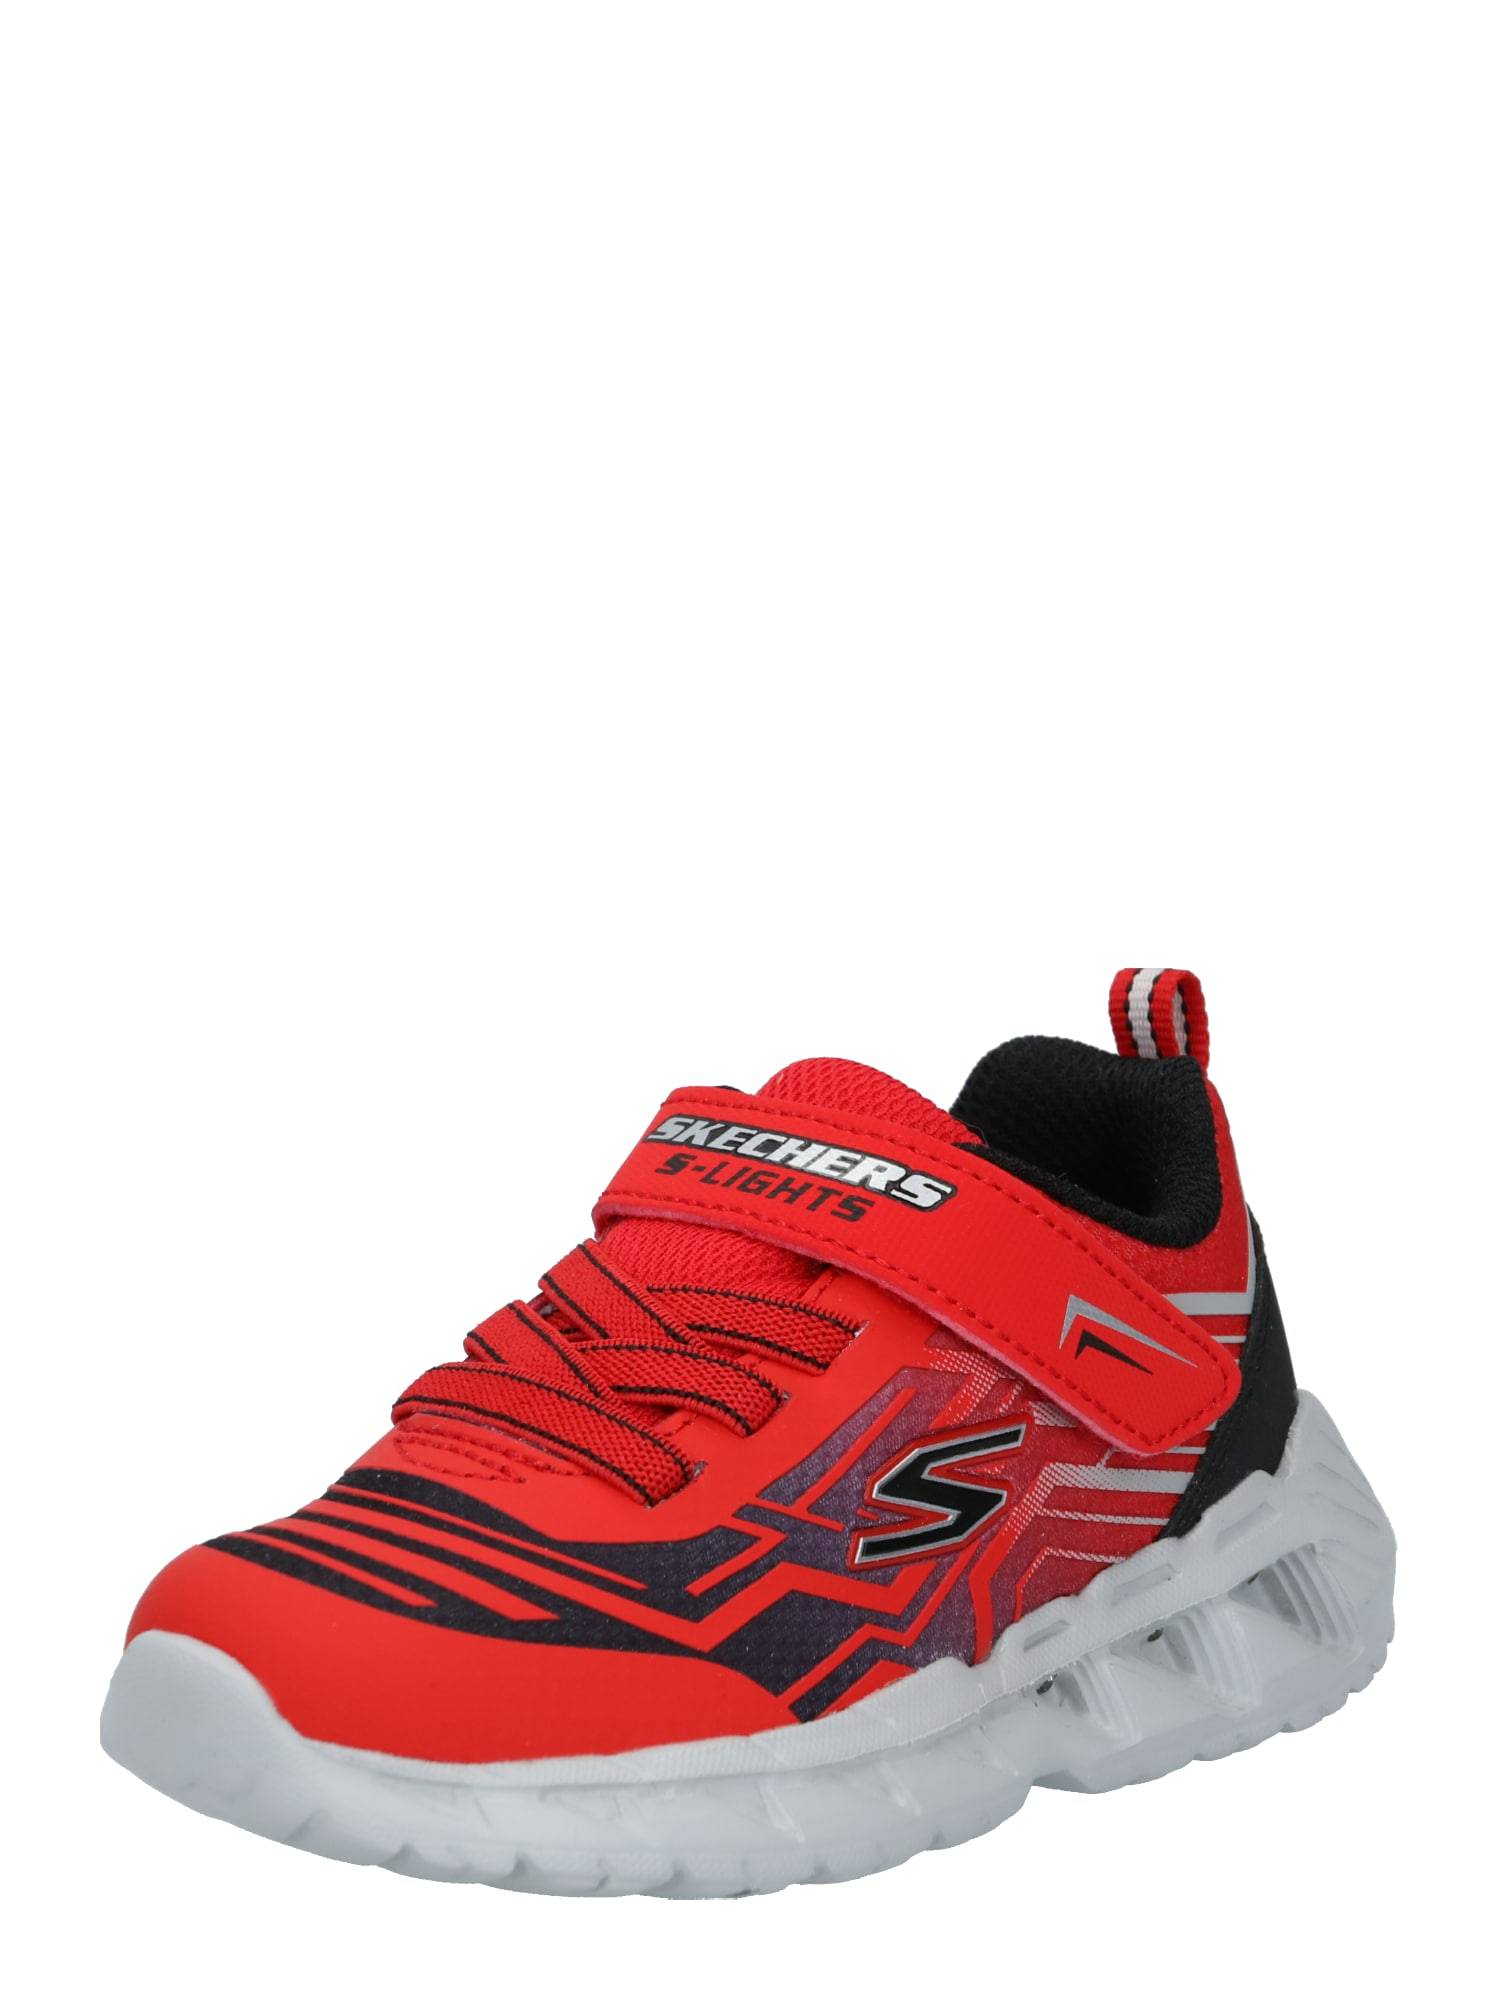 SKECHERS Baskets 'MAGNA-LIGHTS BOZLER'  - Rouge - Taille: 25 - boy